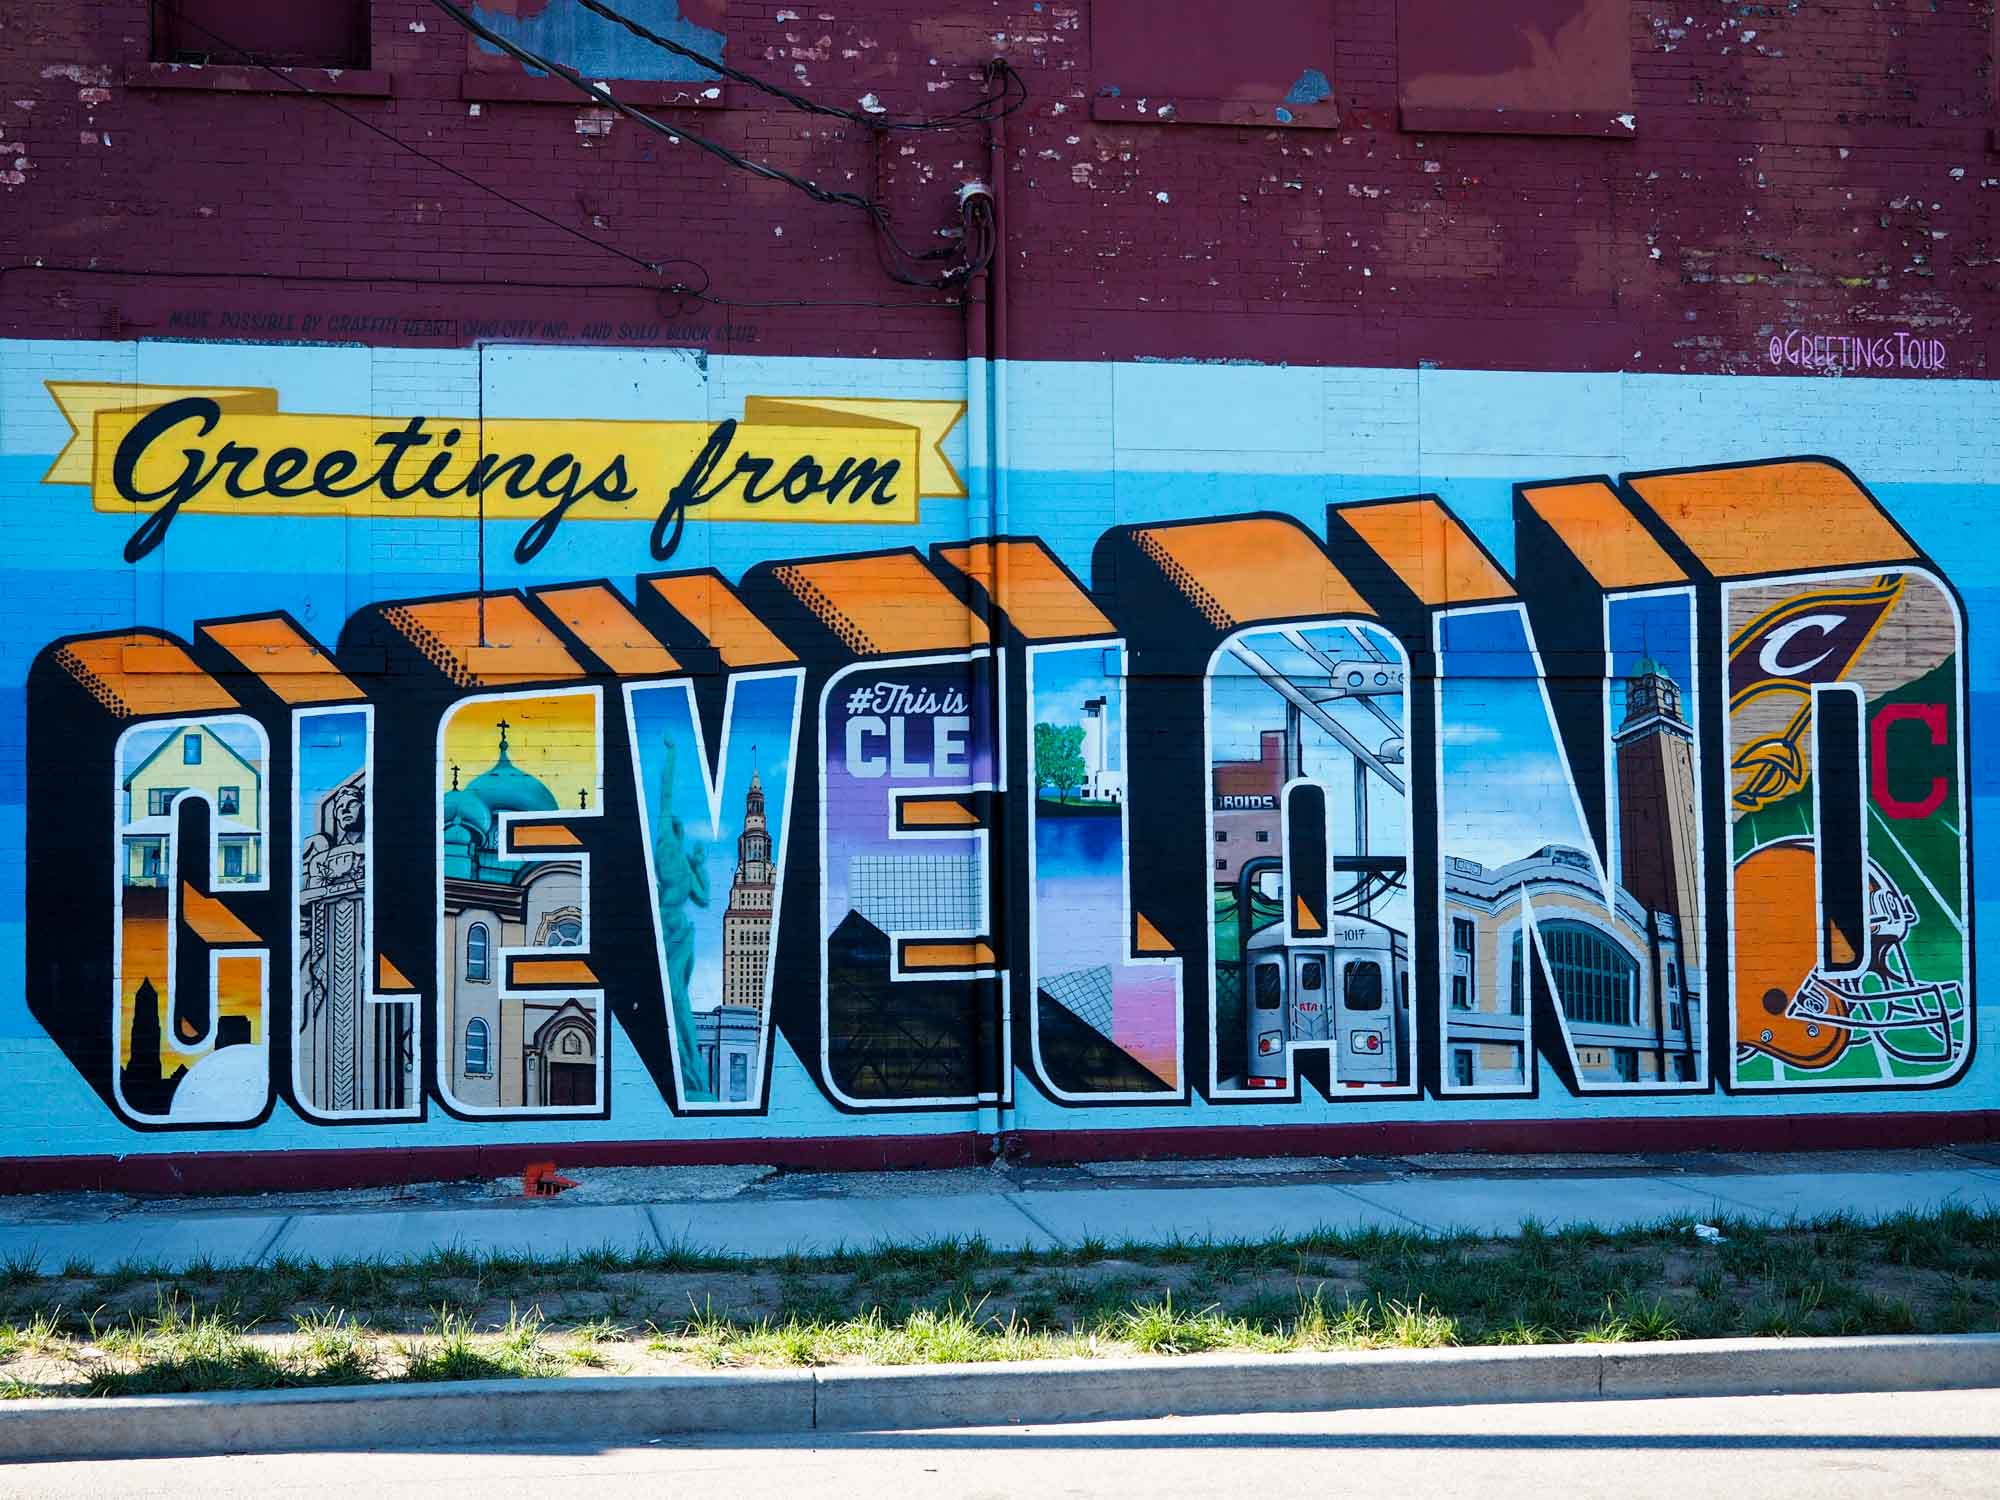 12 Fun Facts About Cleveland That Might Surprise You